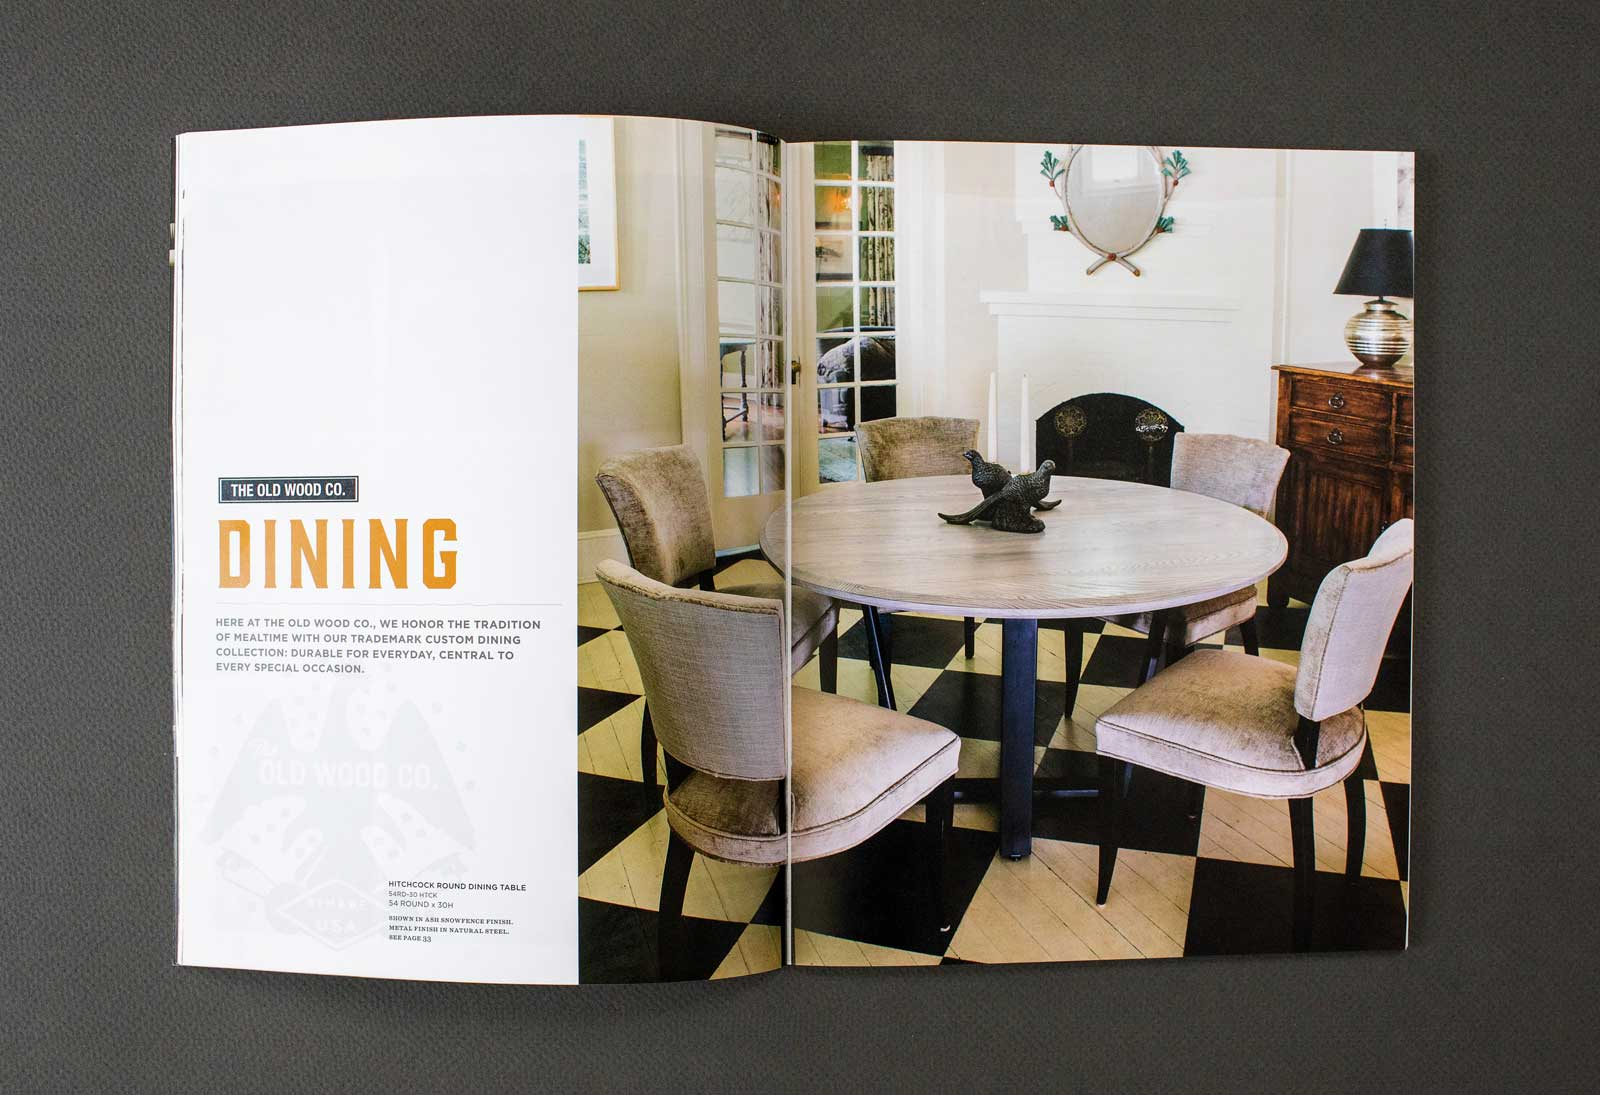 Old Wood Furniture Company catalog spread shows a large dining table with a light colored top and dark legs